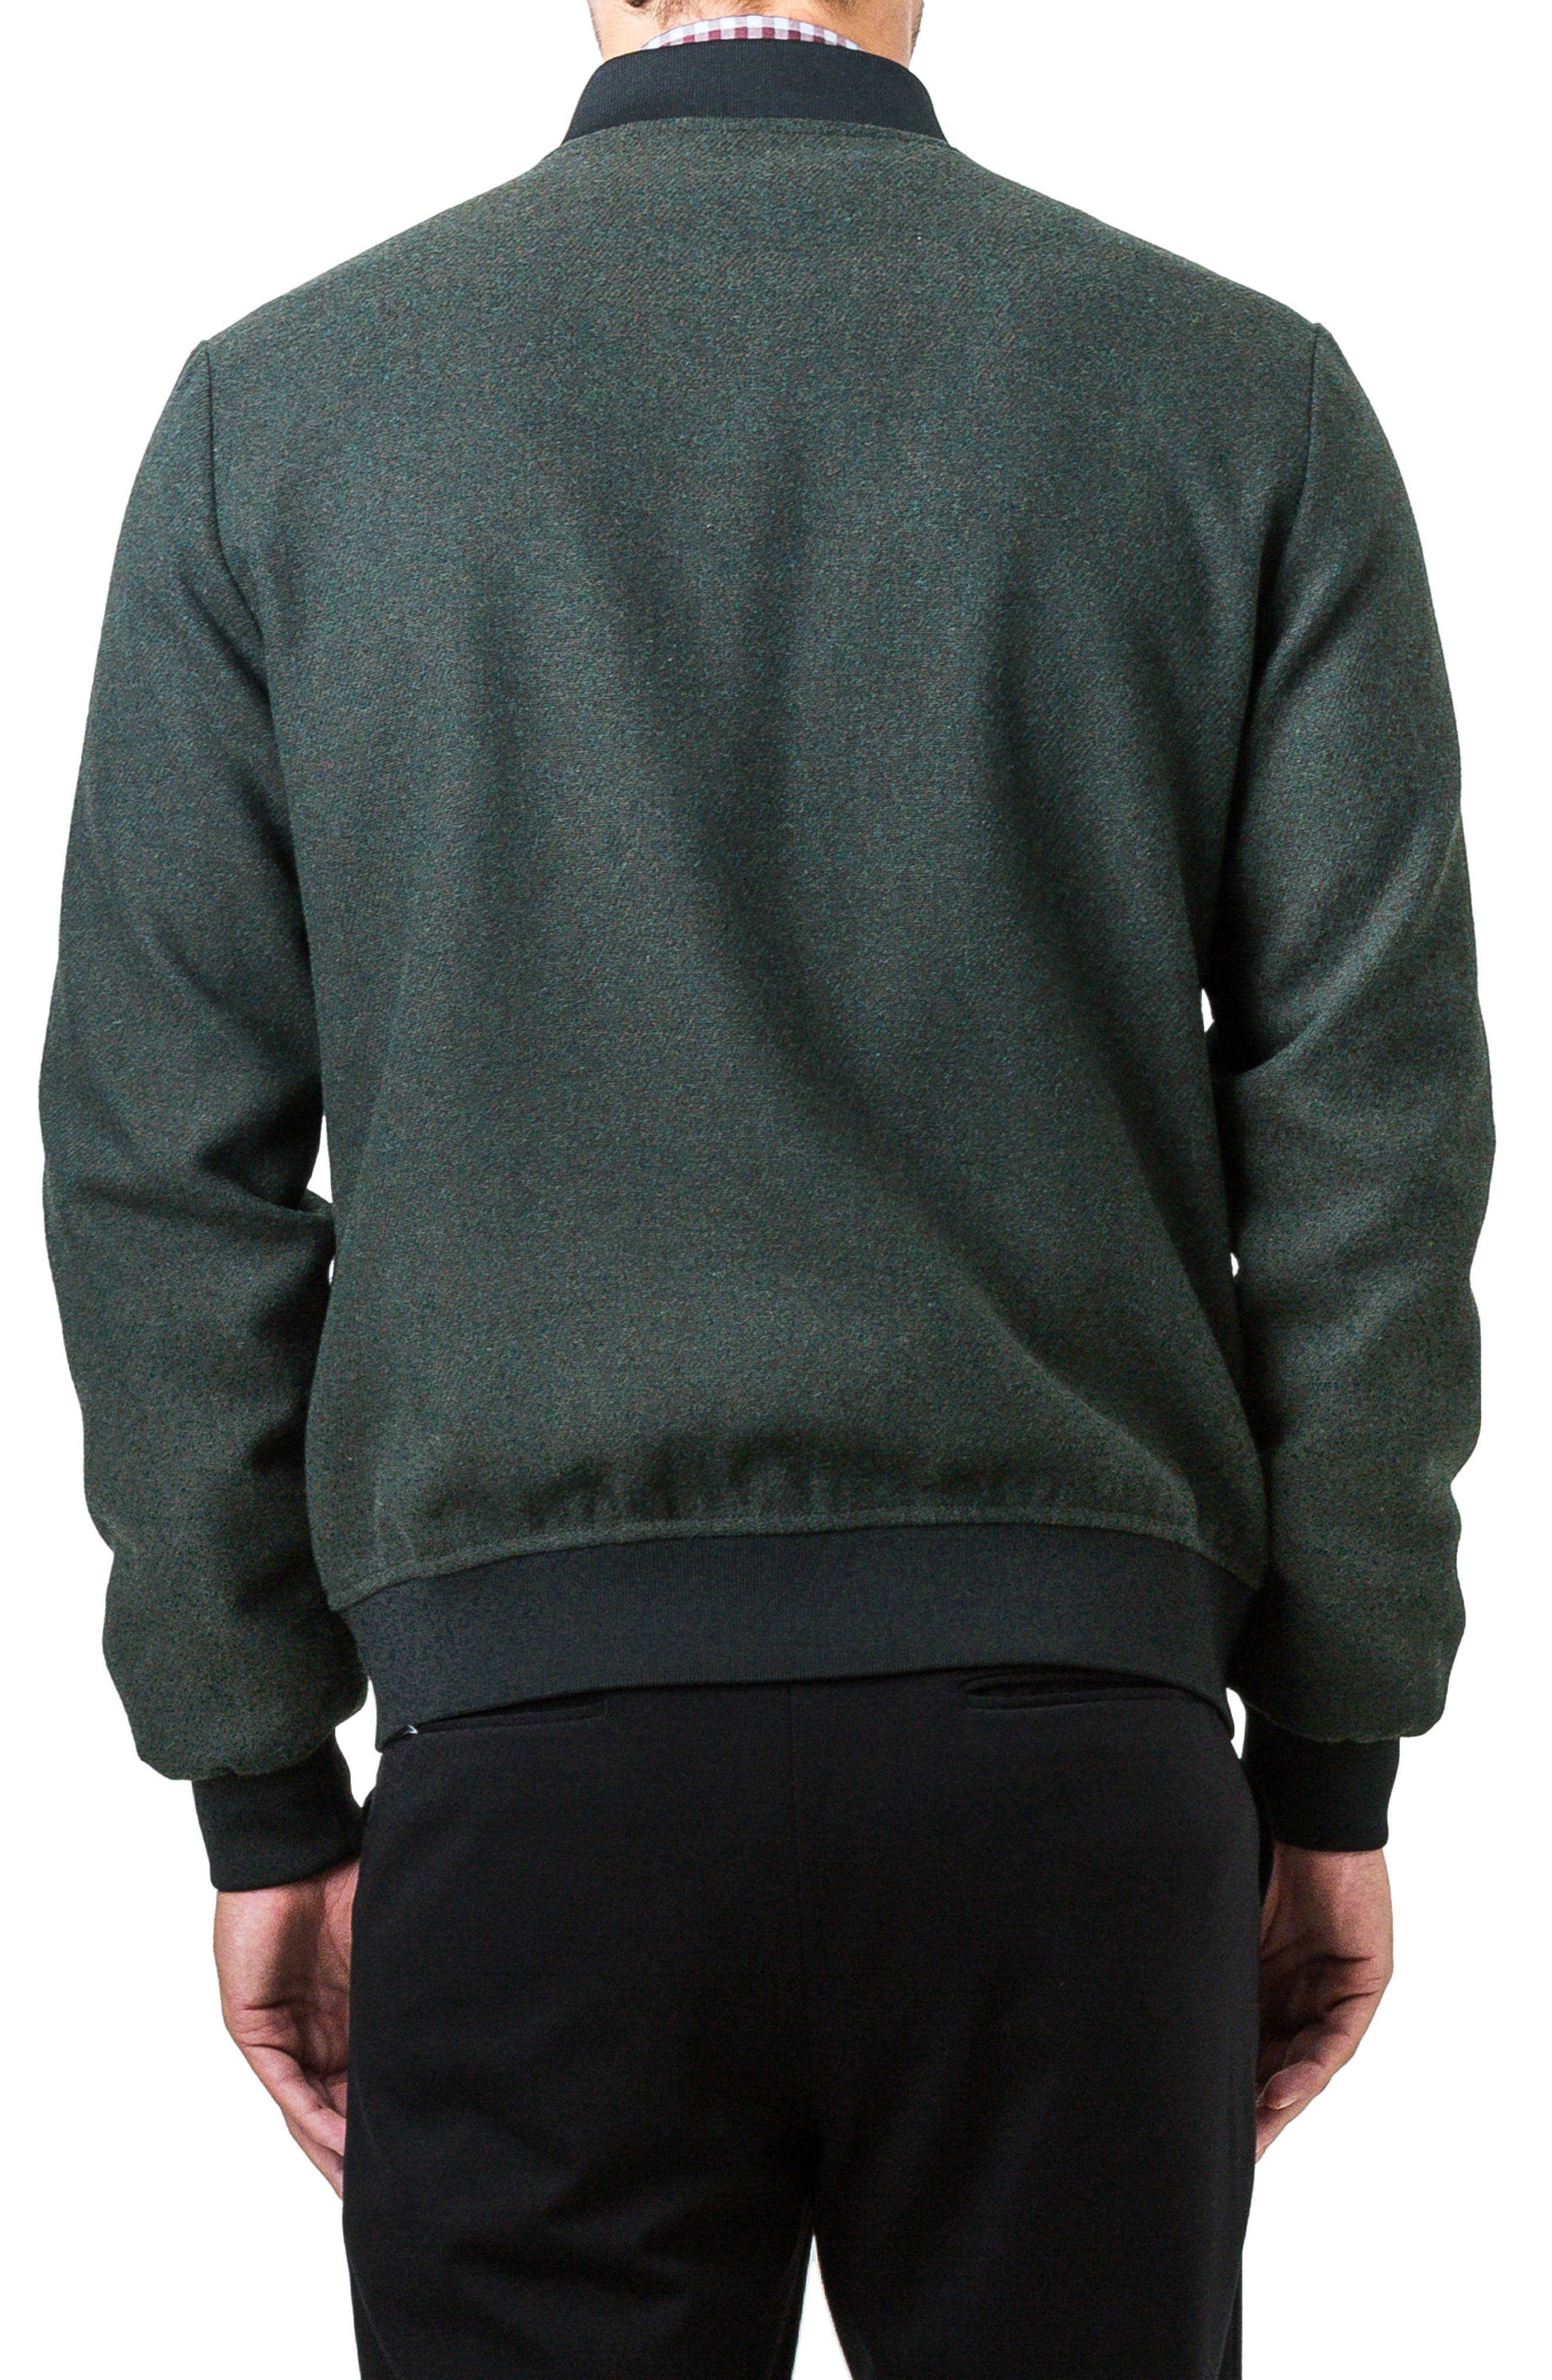 Aether Bomber Jacket,                             Alternate thumbnail 2, color,                             Pine